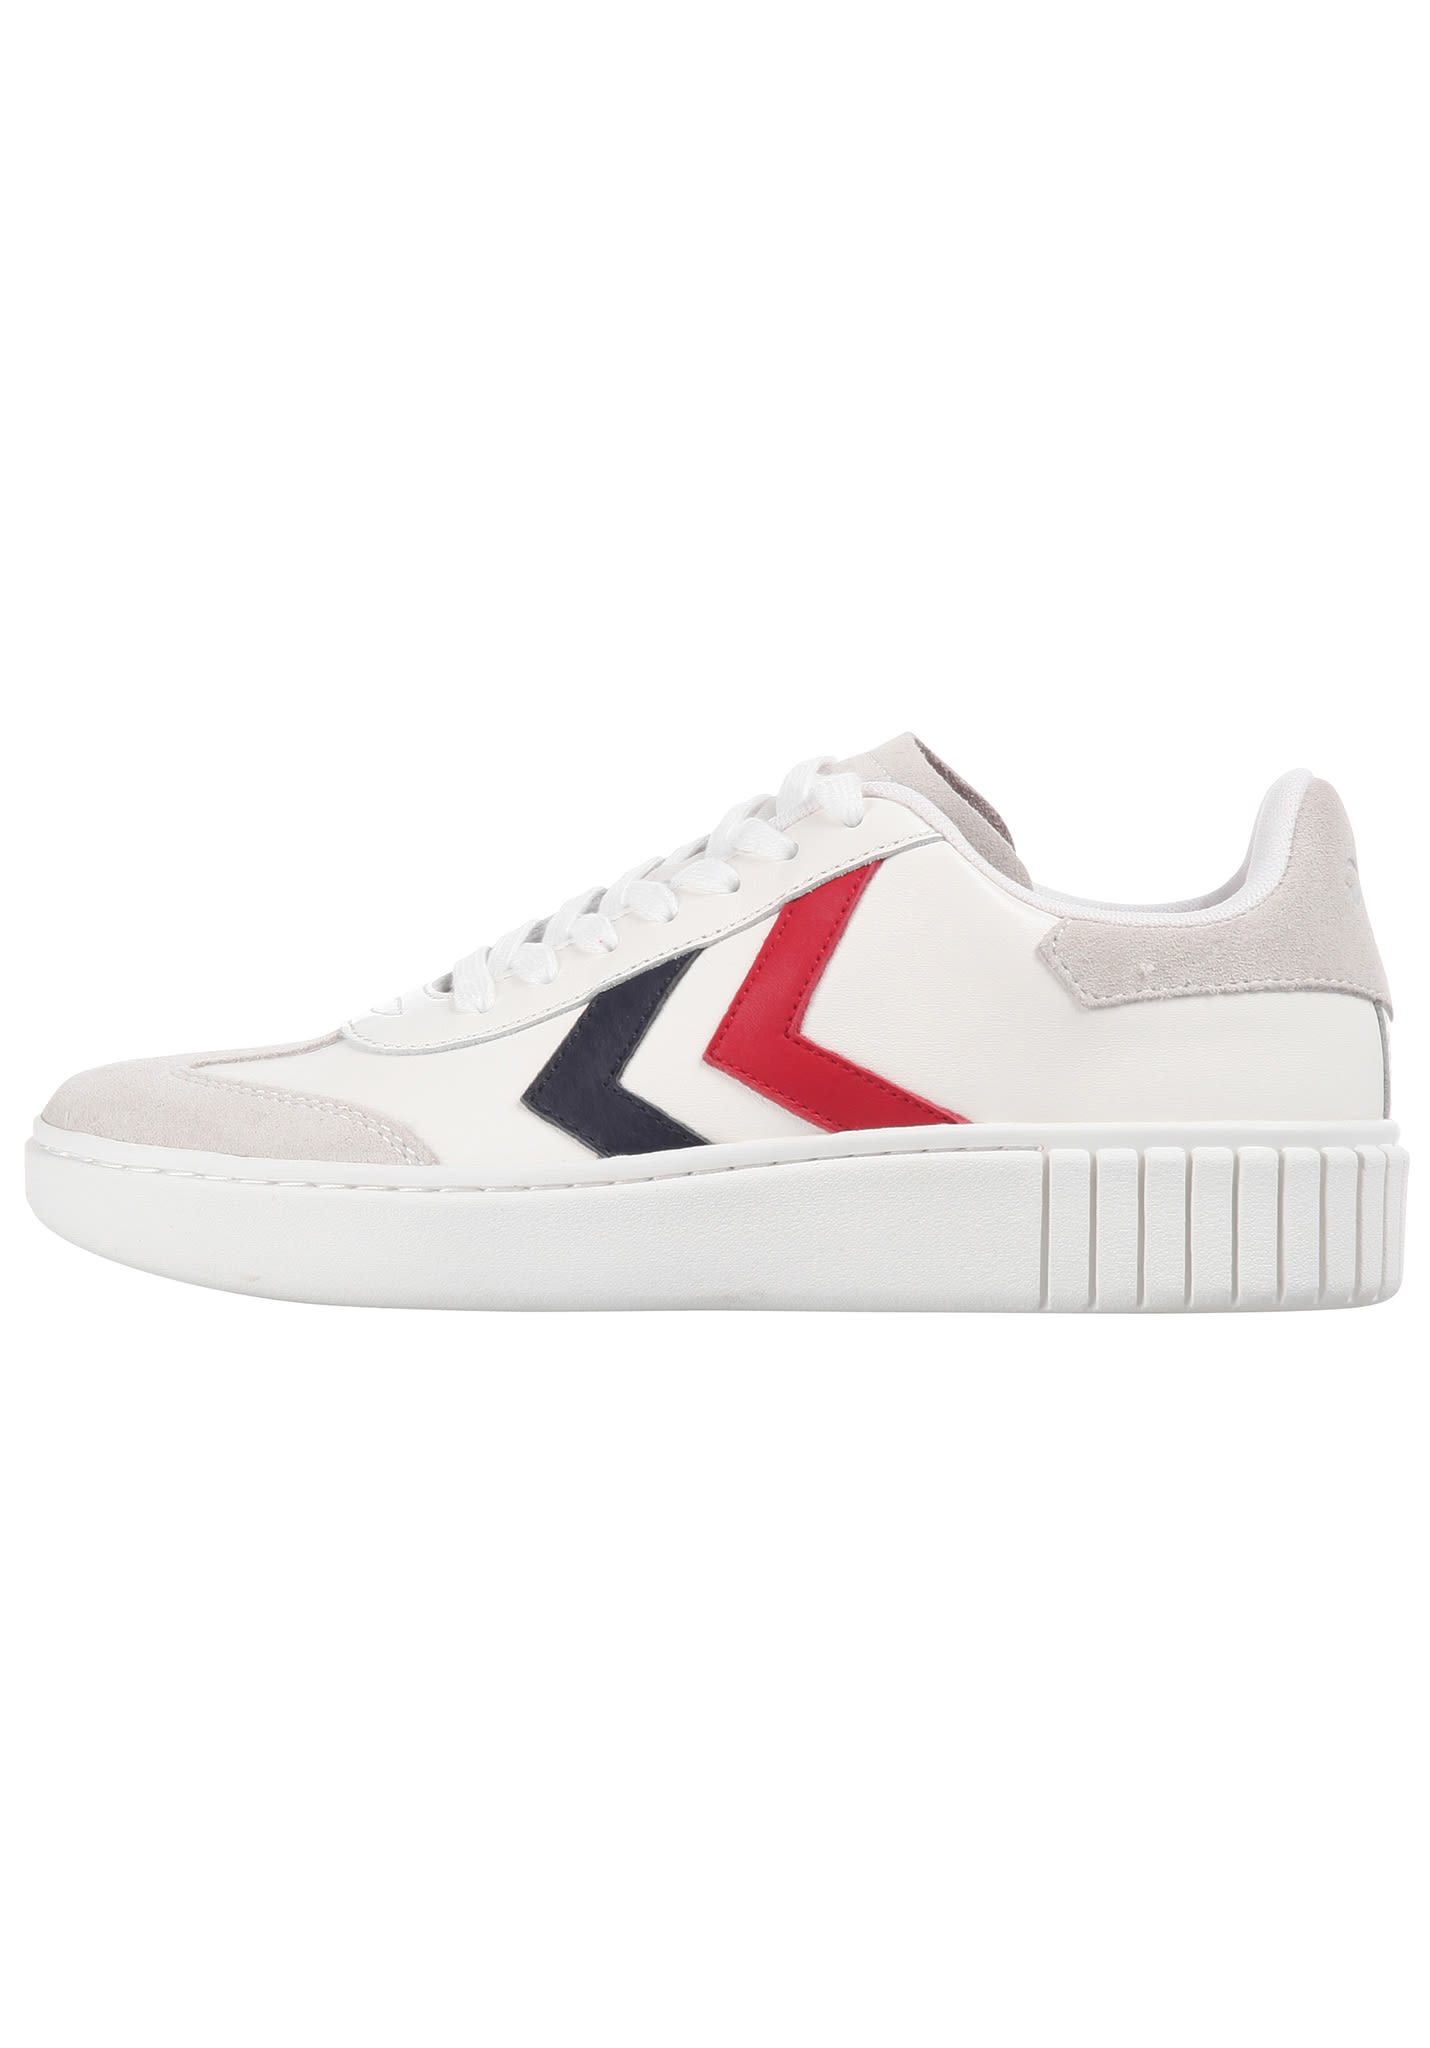 Outlet Shopping Online Hummel Women's Aarhus Classic Low-Top Sneakers Shop For Sale Online Discount New Arrival XqQAULF0